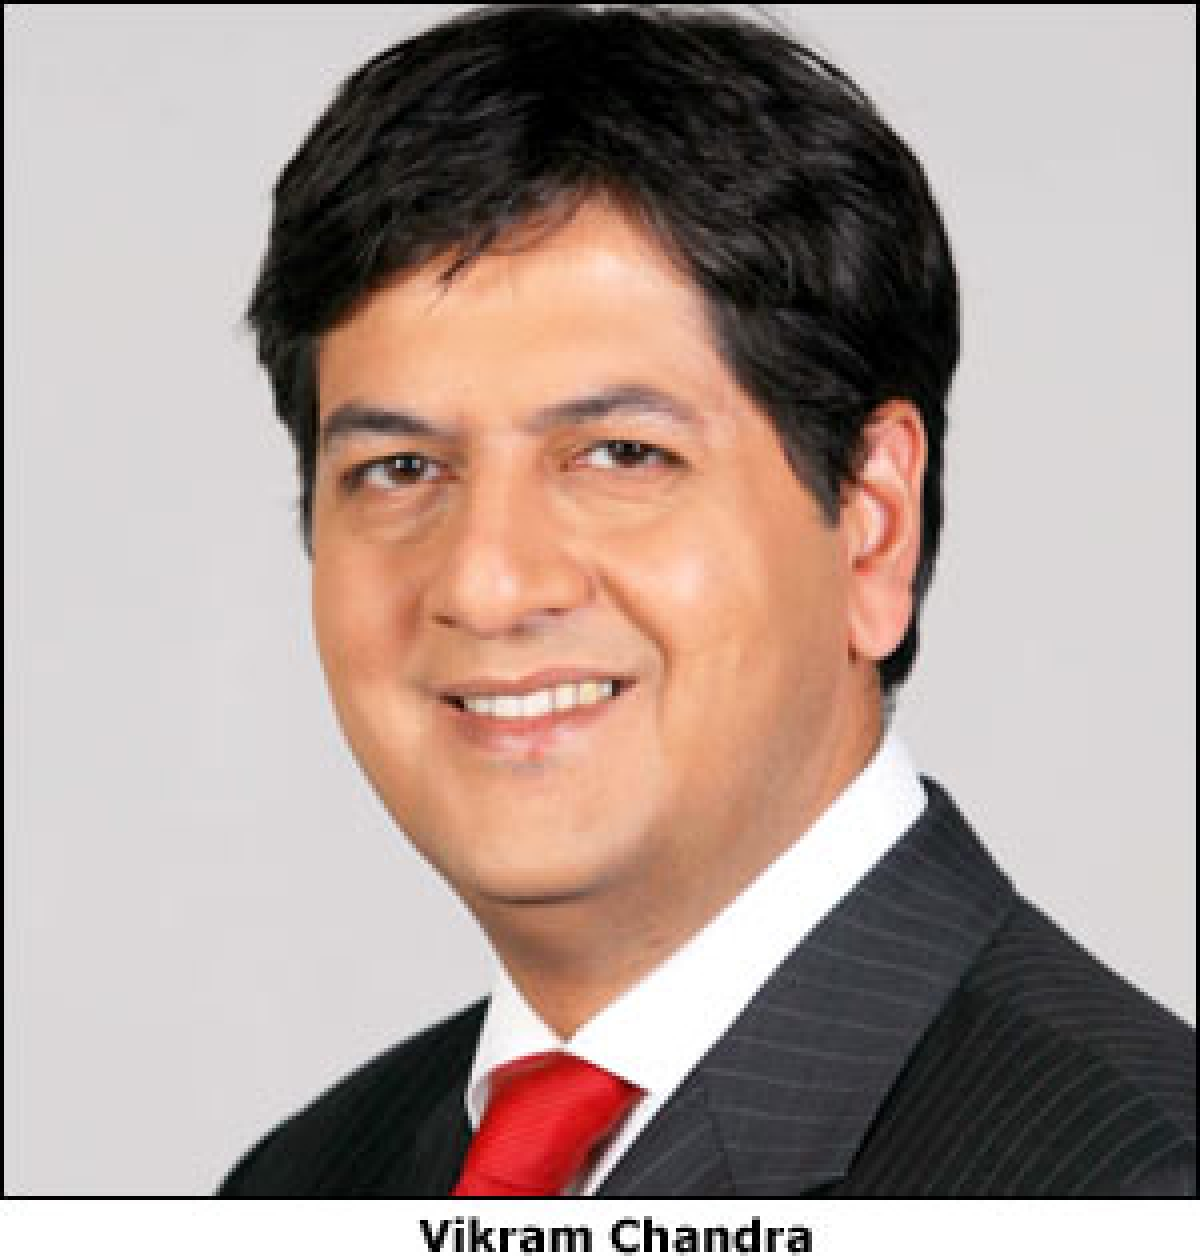 Vikram Chandra steps down as CEO and executive director of NDTV; K V L Narayan Rao to be the new Group CEO